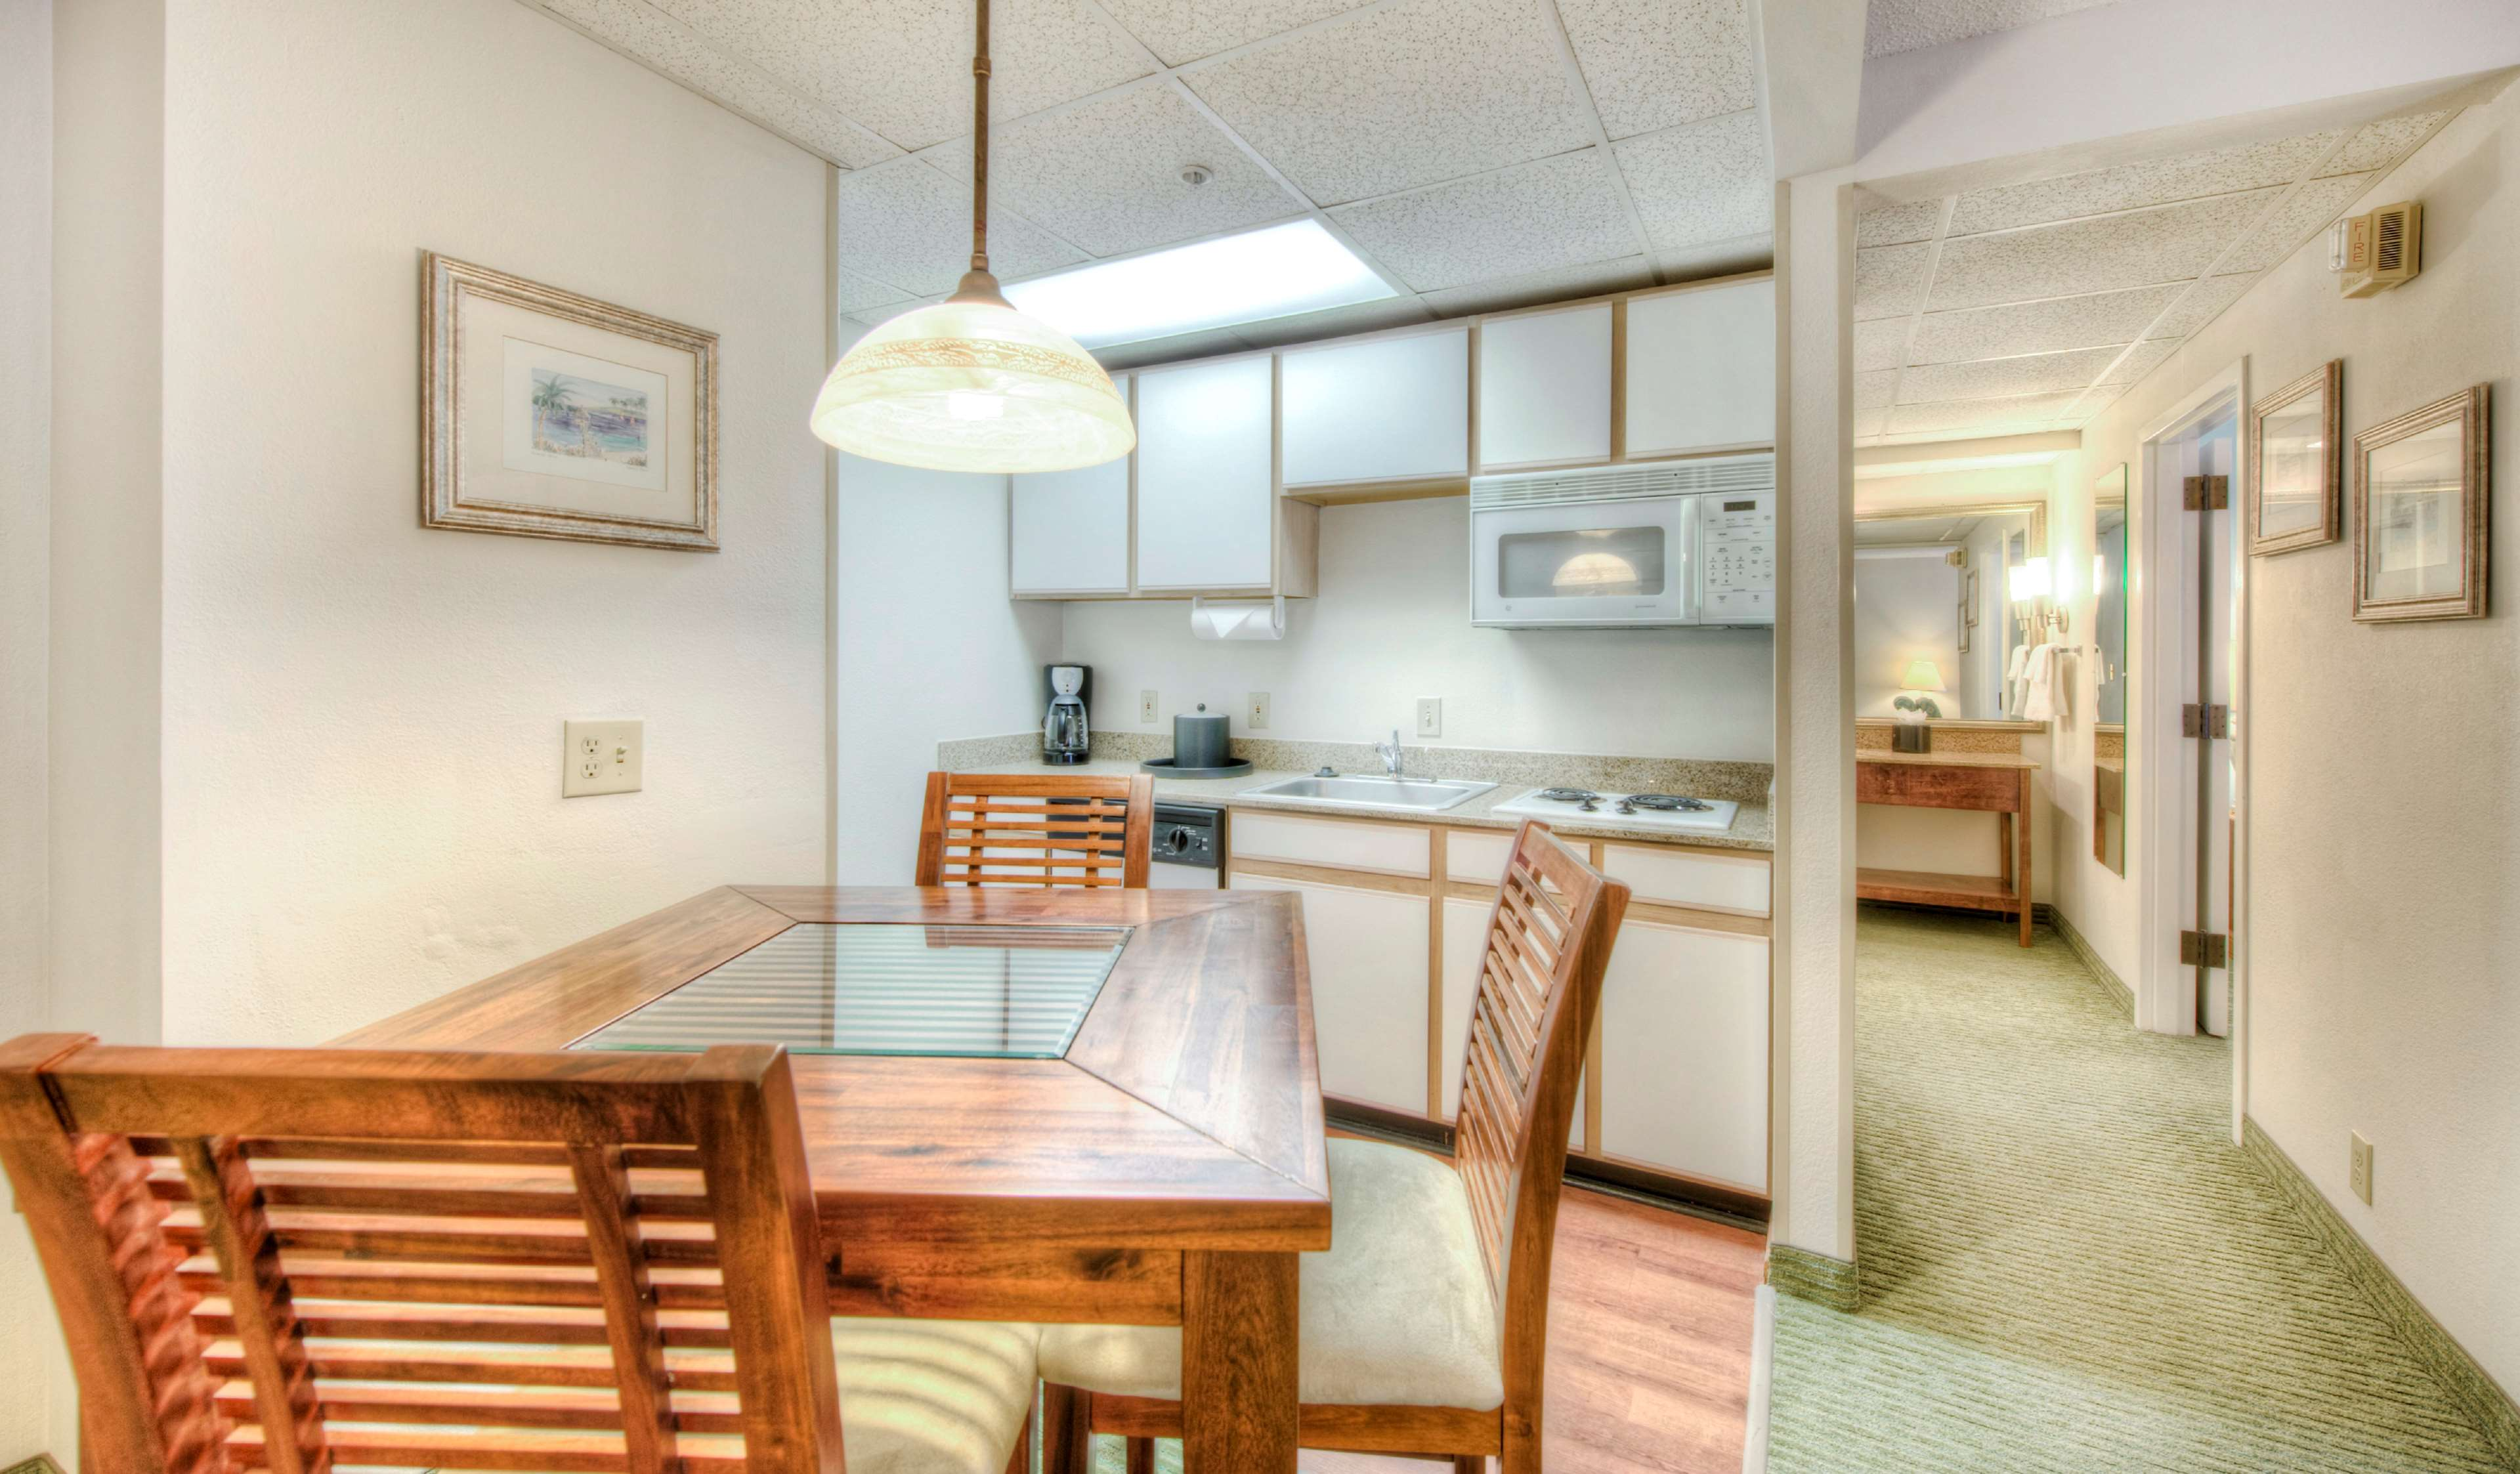 Hampton Inn & Suites Wilmington/Wrightsville Beach image 48